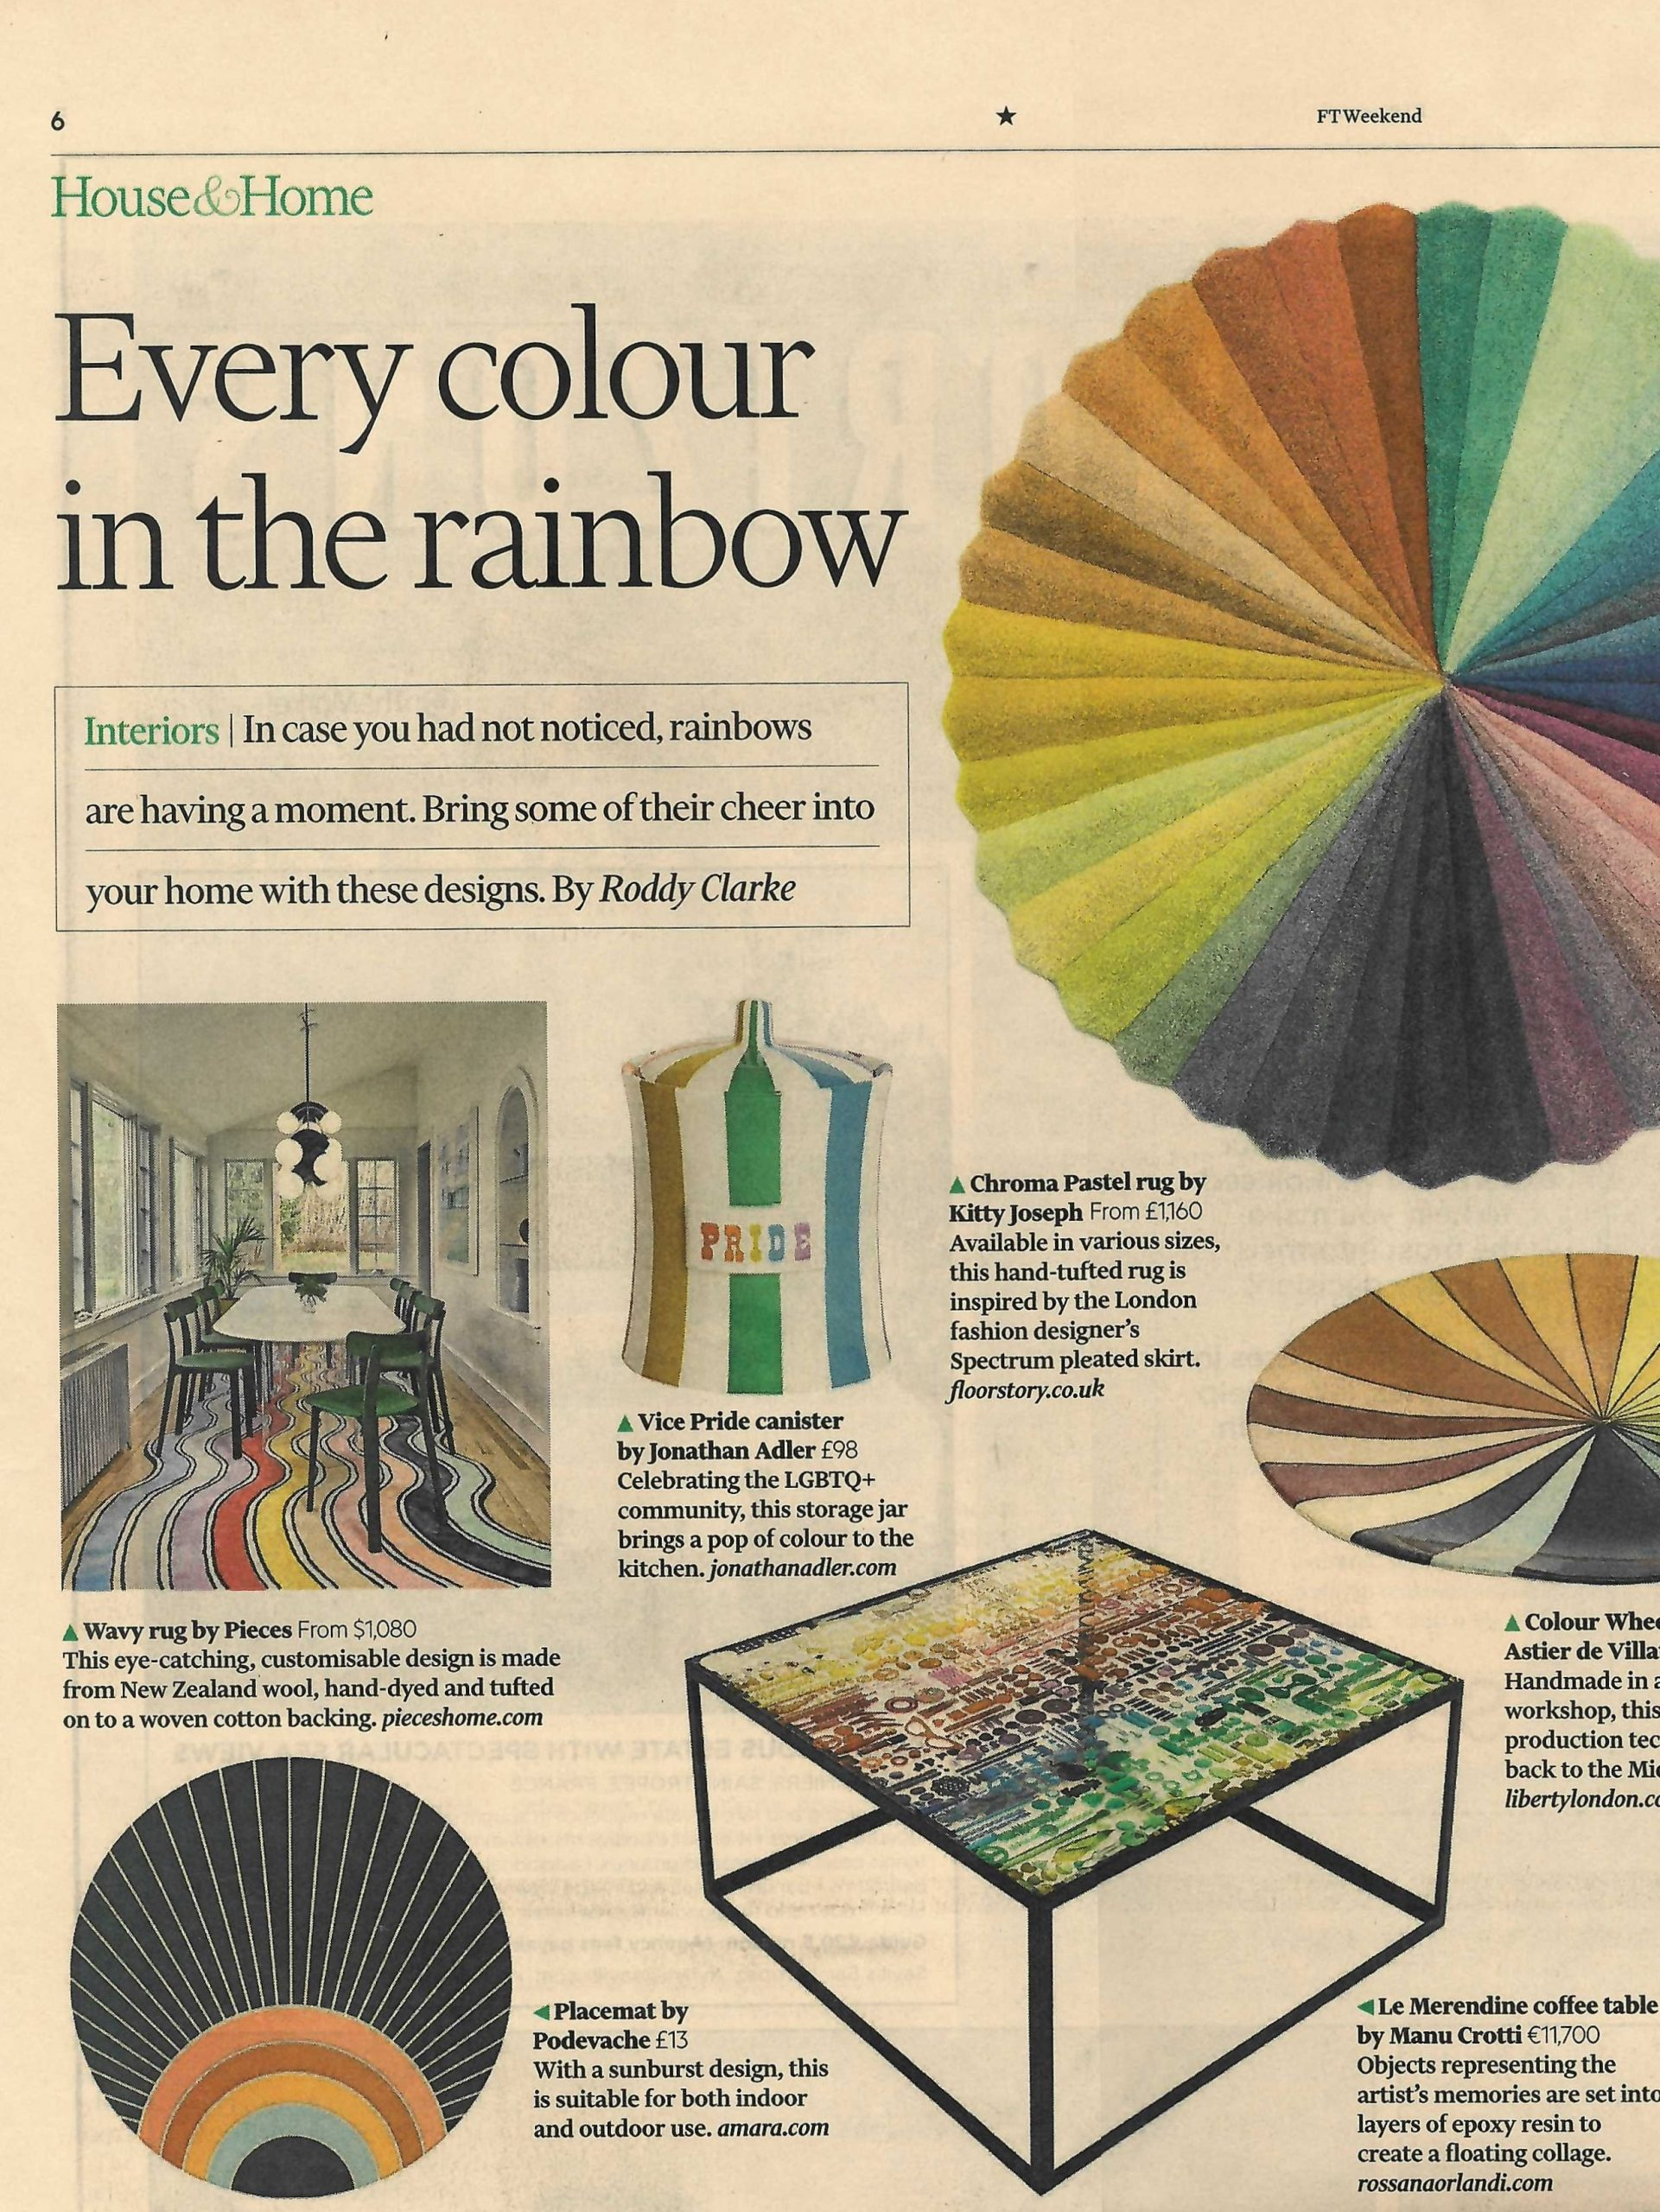 Jonathan Adler's Pride canister brings cheer with every colour in the rainbow, says FT Weekend